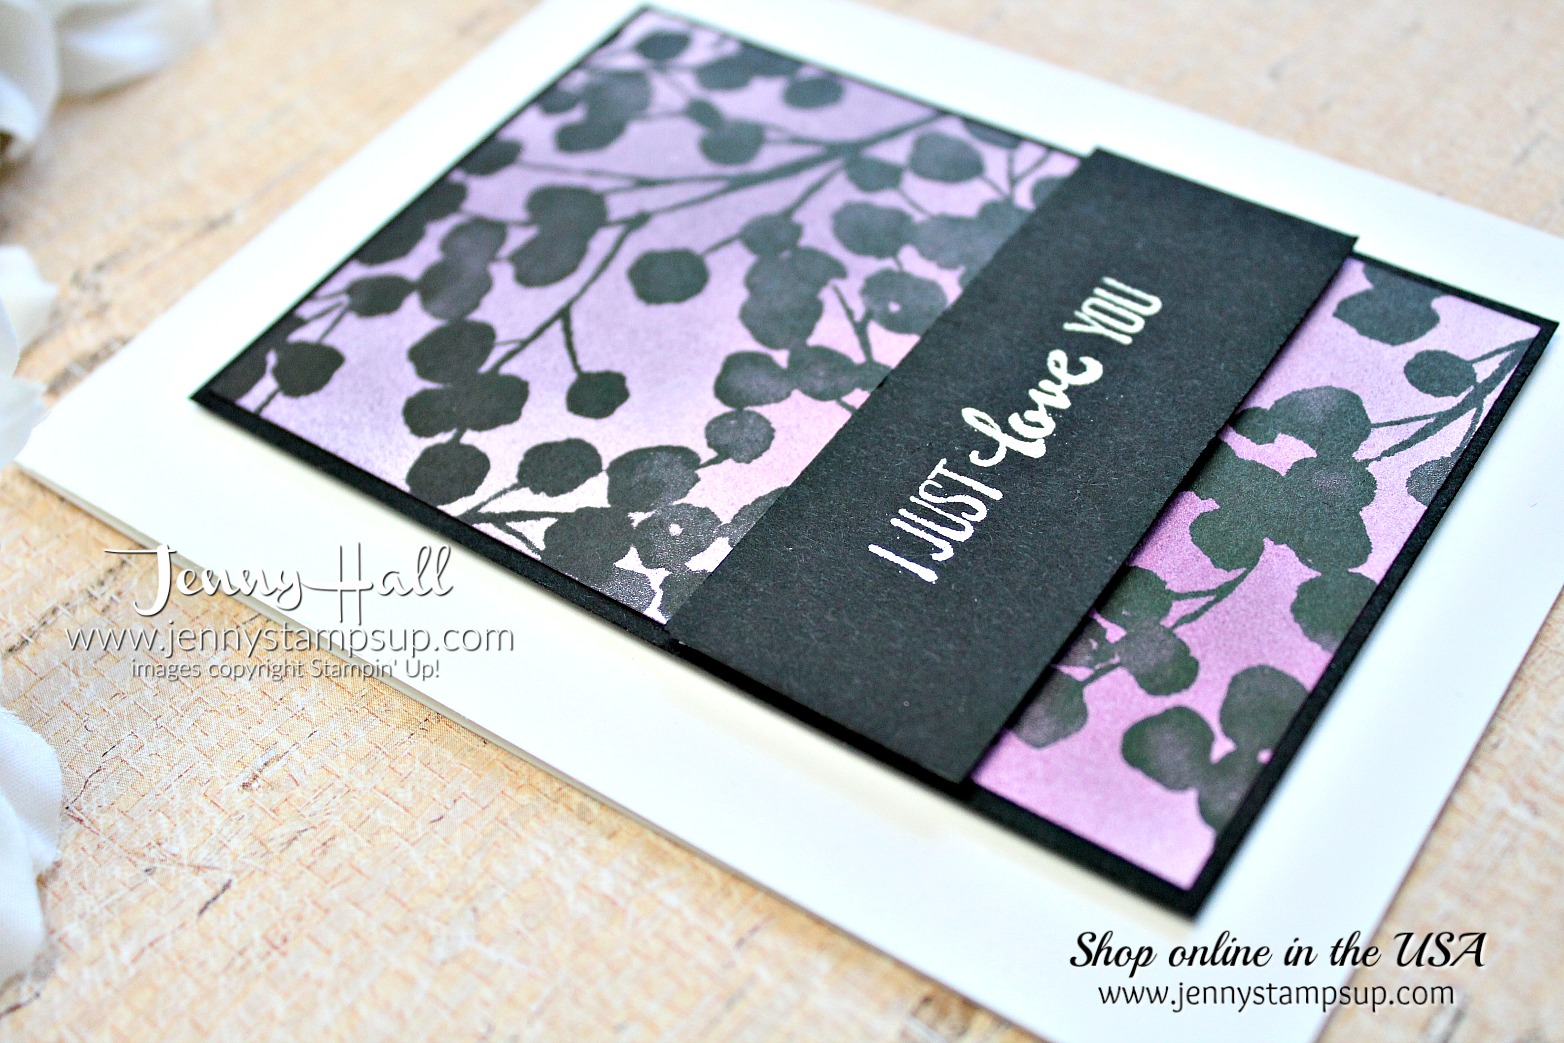 Purple Passion card with Petal Palette Bundle by Jenny Hall at www.jennyhalldesign.com for #stampinup #cardmaking #petalpalette #brayer #coloring #jennystampsup #jennyhalldesign #ombre #cardmakingtechniques #2018occasionscatalog #stamping